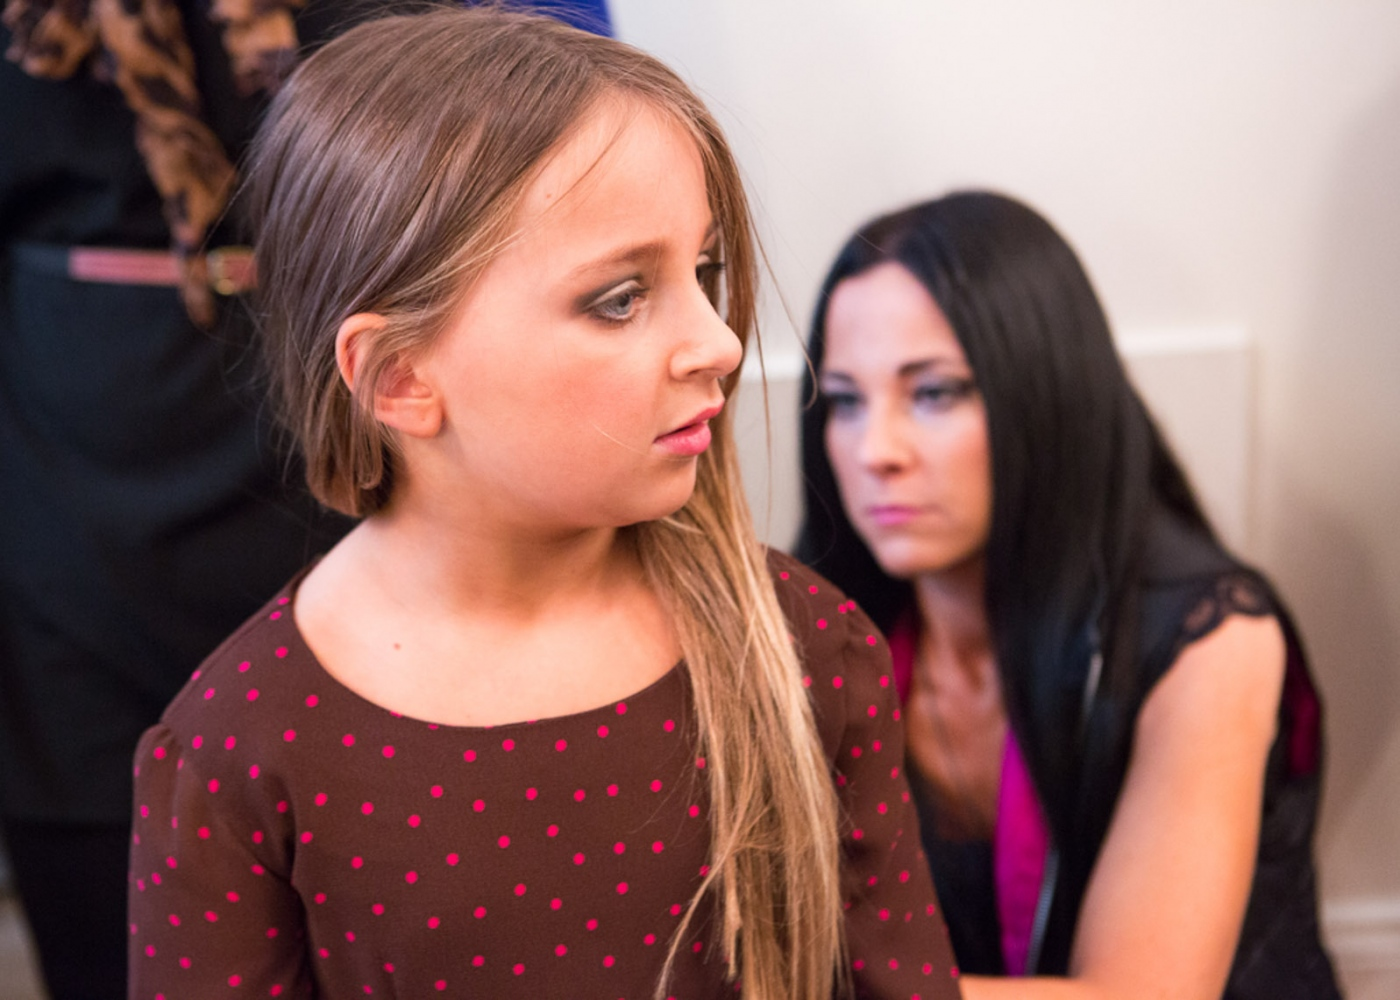 Isabella changes outfits backstage with the help of her mother Susanna at New York Fashion Week For Nido Magazine